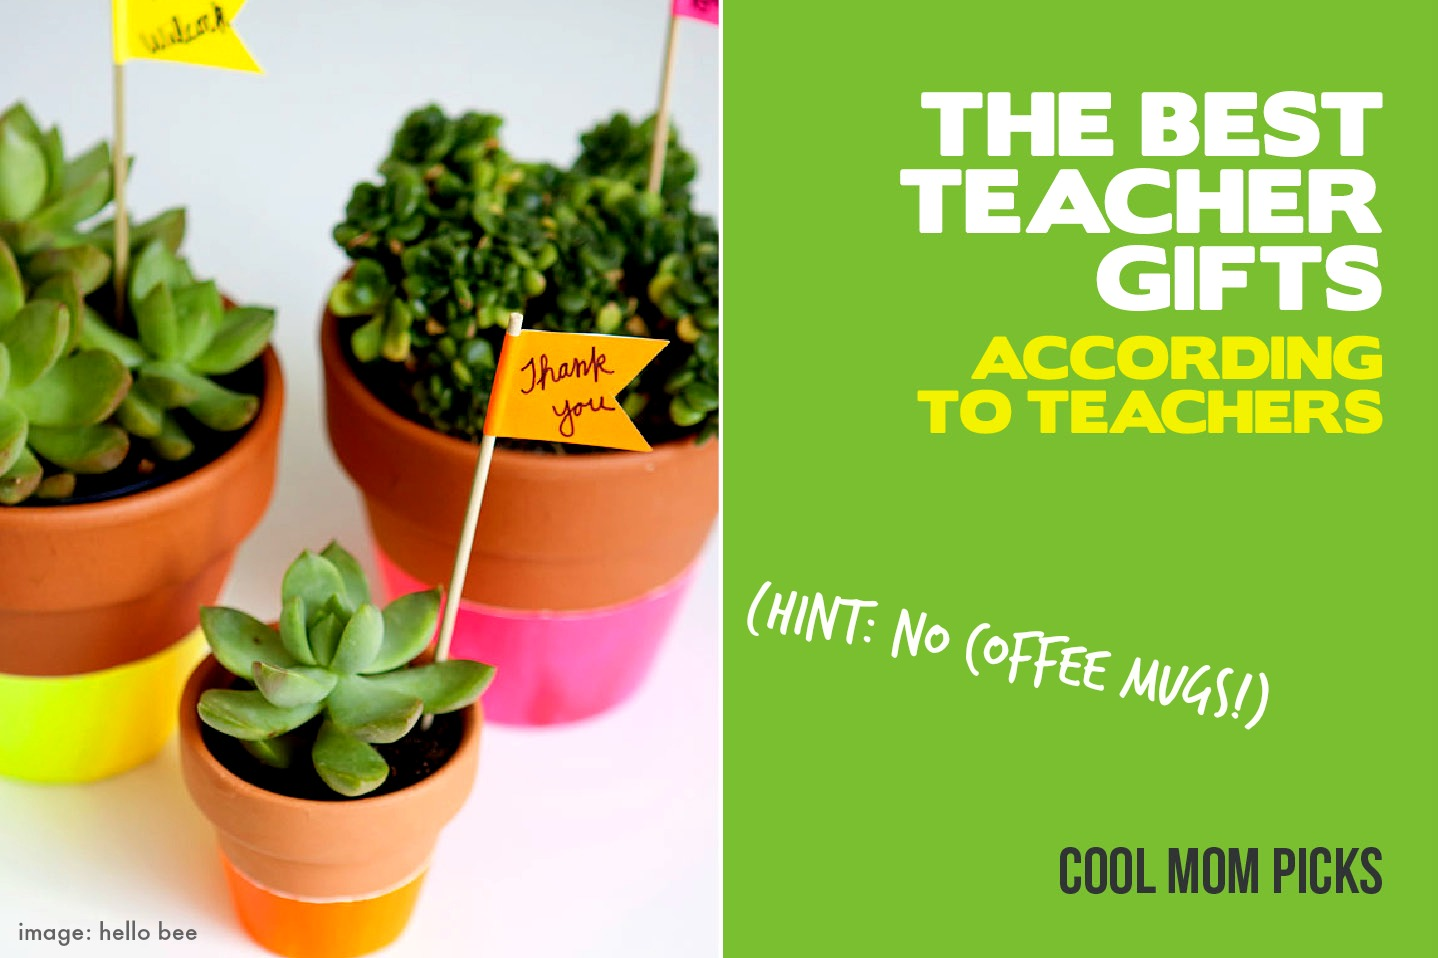 The best teacher gift ideas from people who know: actual teachers.